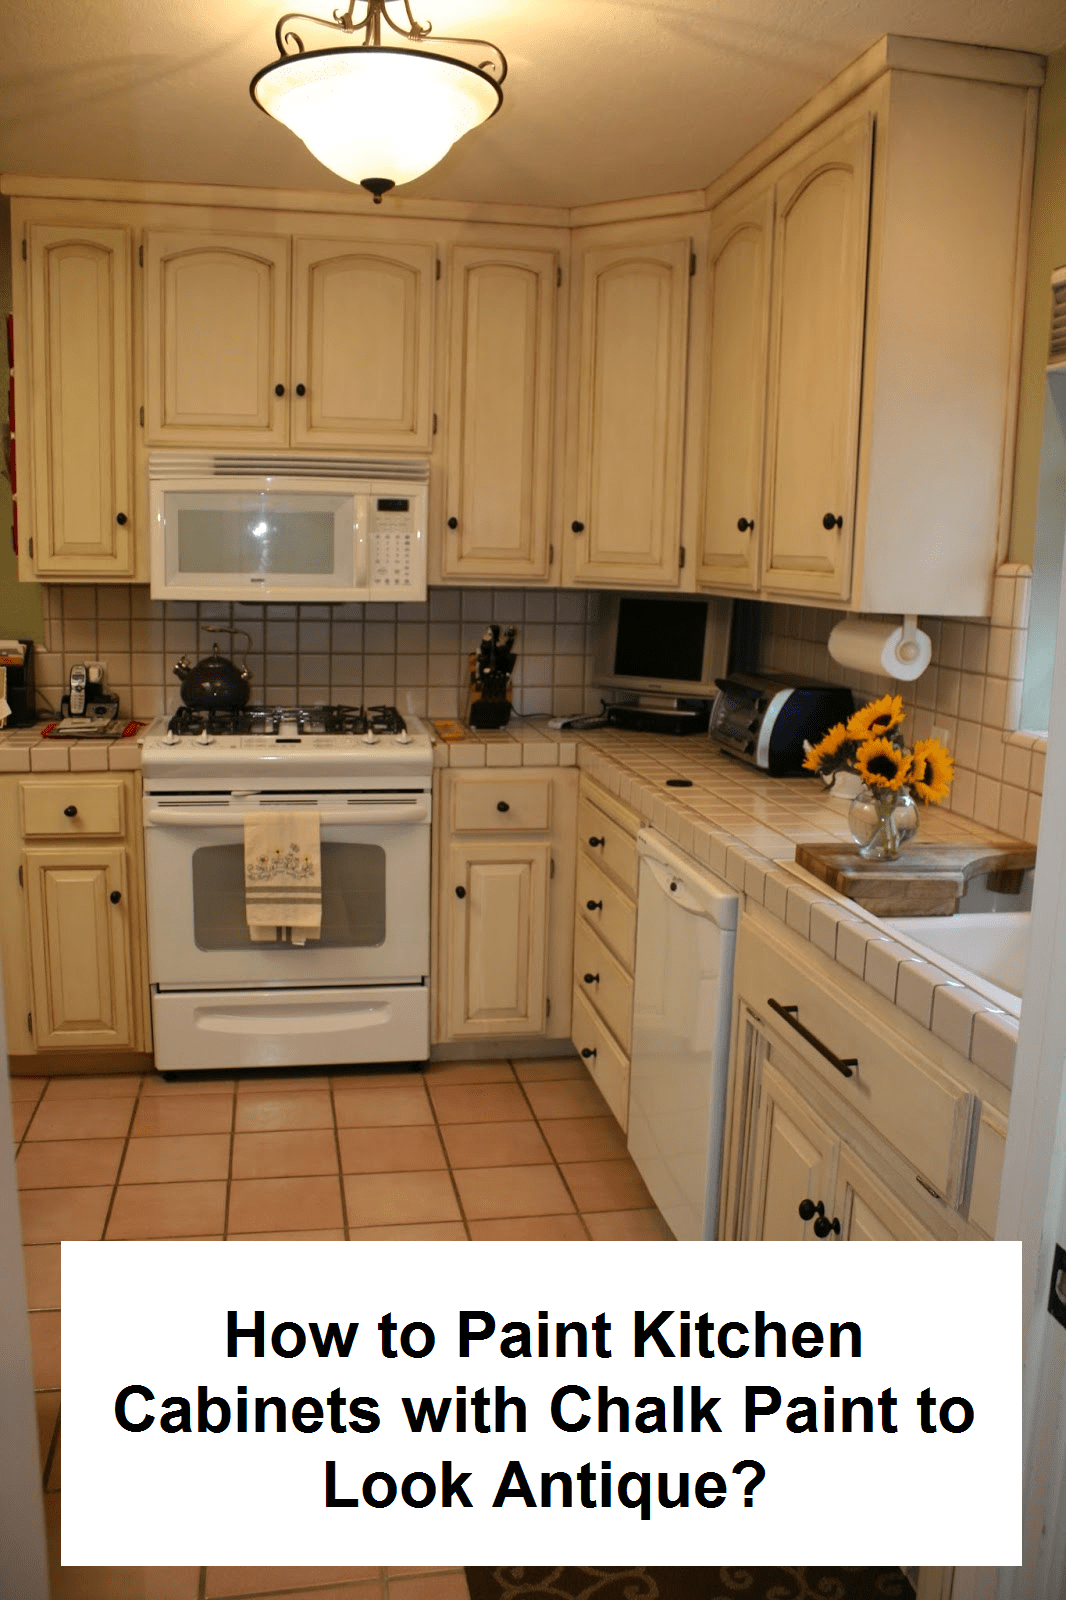 How to Paint Kitchen Cabinets with Chalk Paint to Look Antique